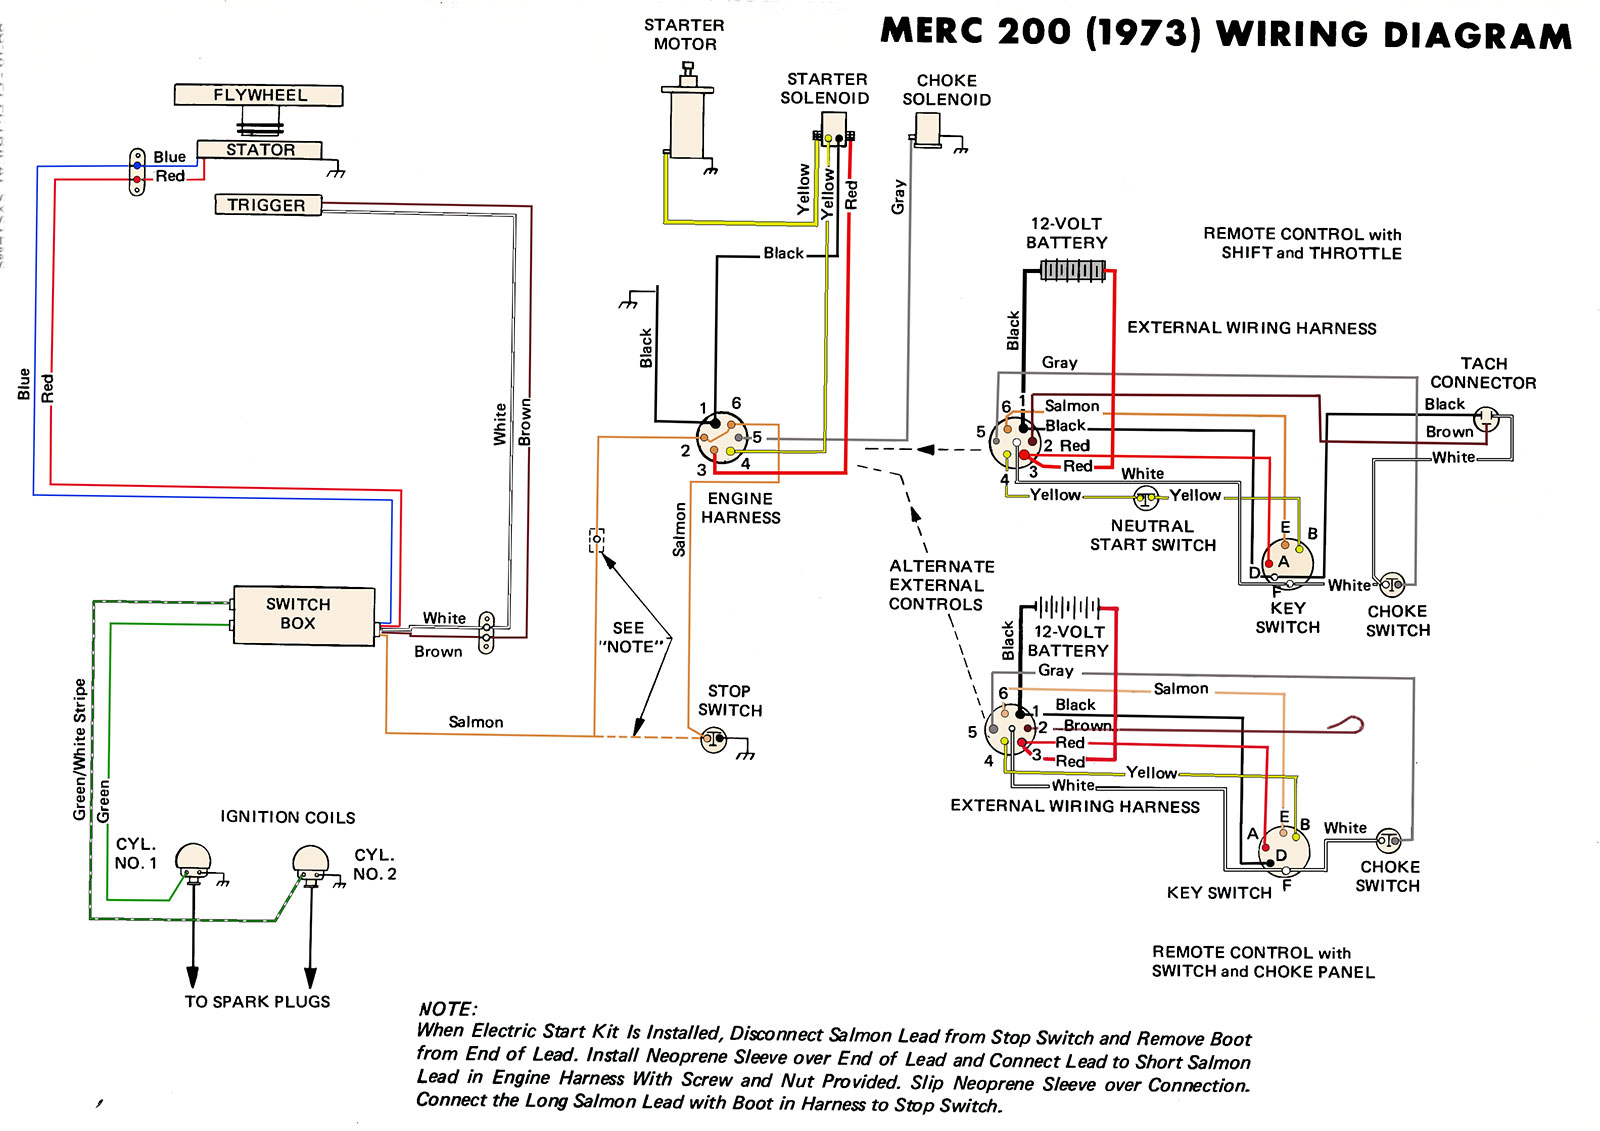 1979 mercury 150 hp outboard wiring diagram 1990 jeep wrangler alternator johnson 35